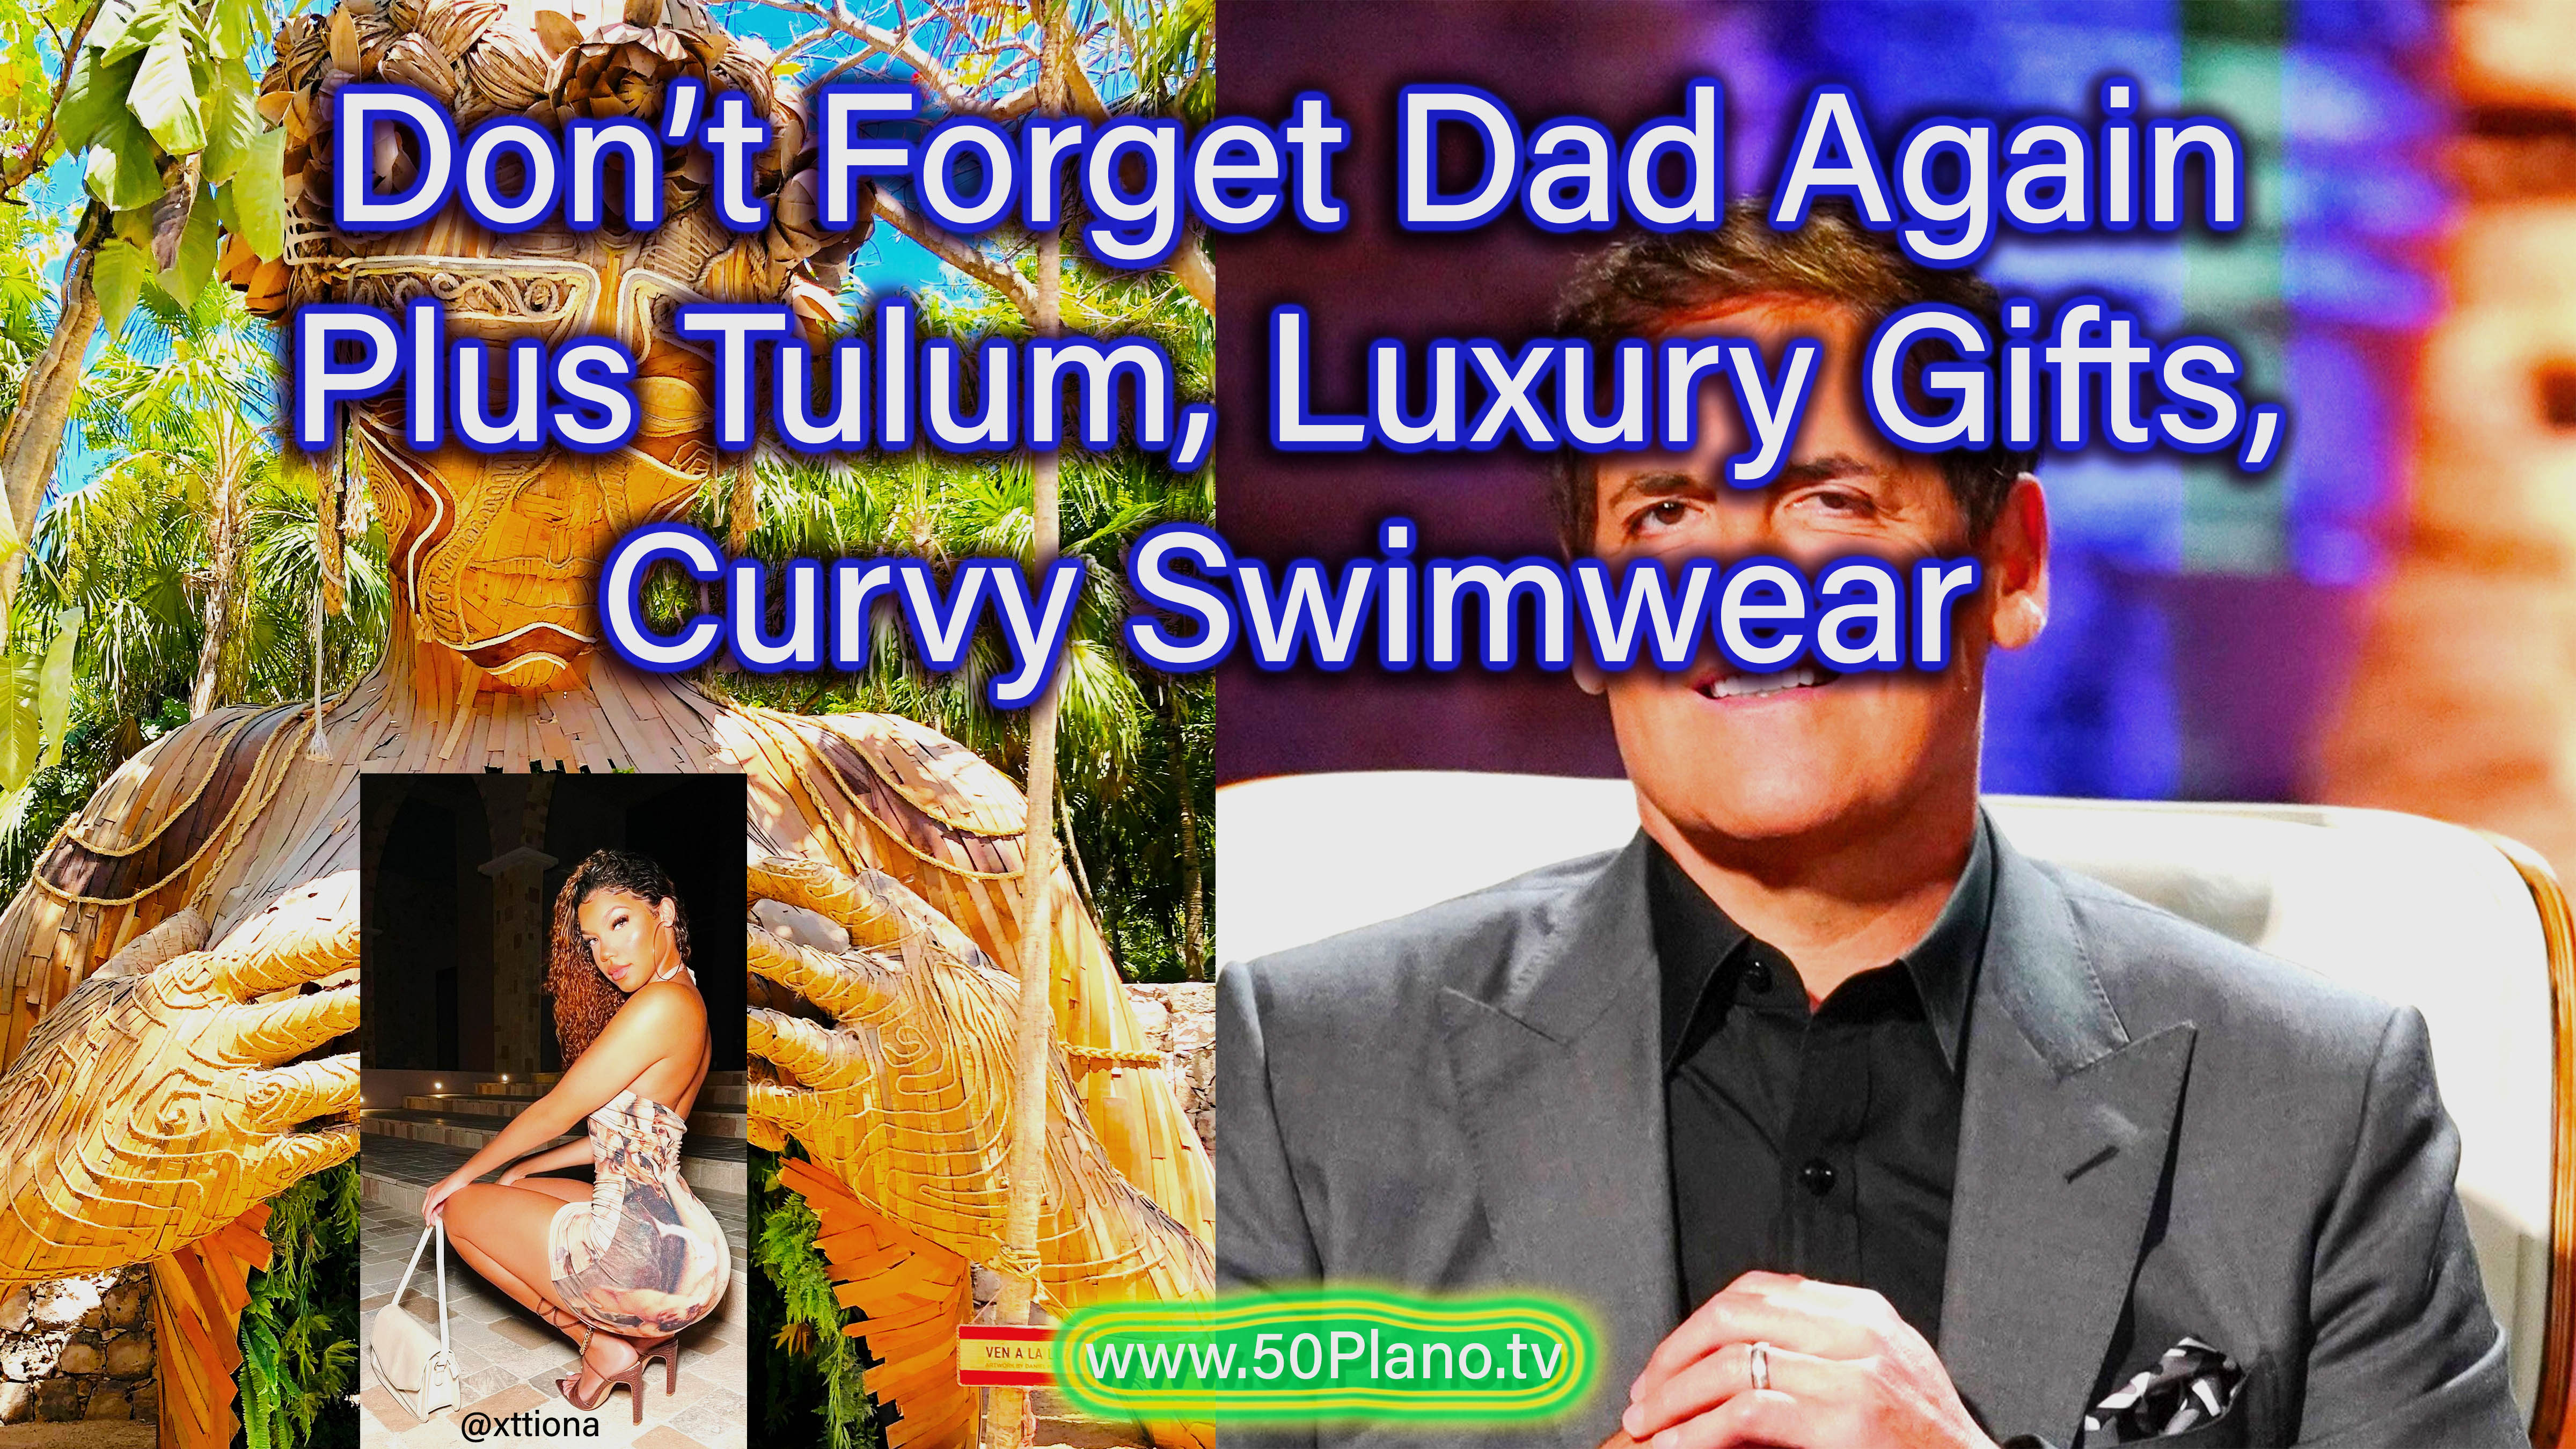 Don't Forget Dad Again!! Plus Tulum, Curvy Swimwear, and more…